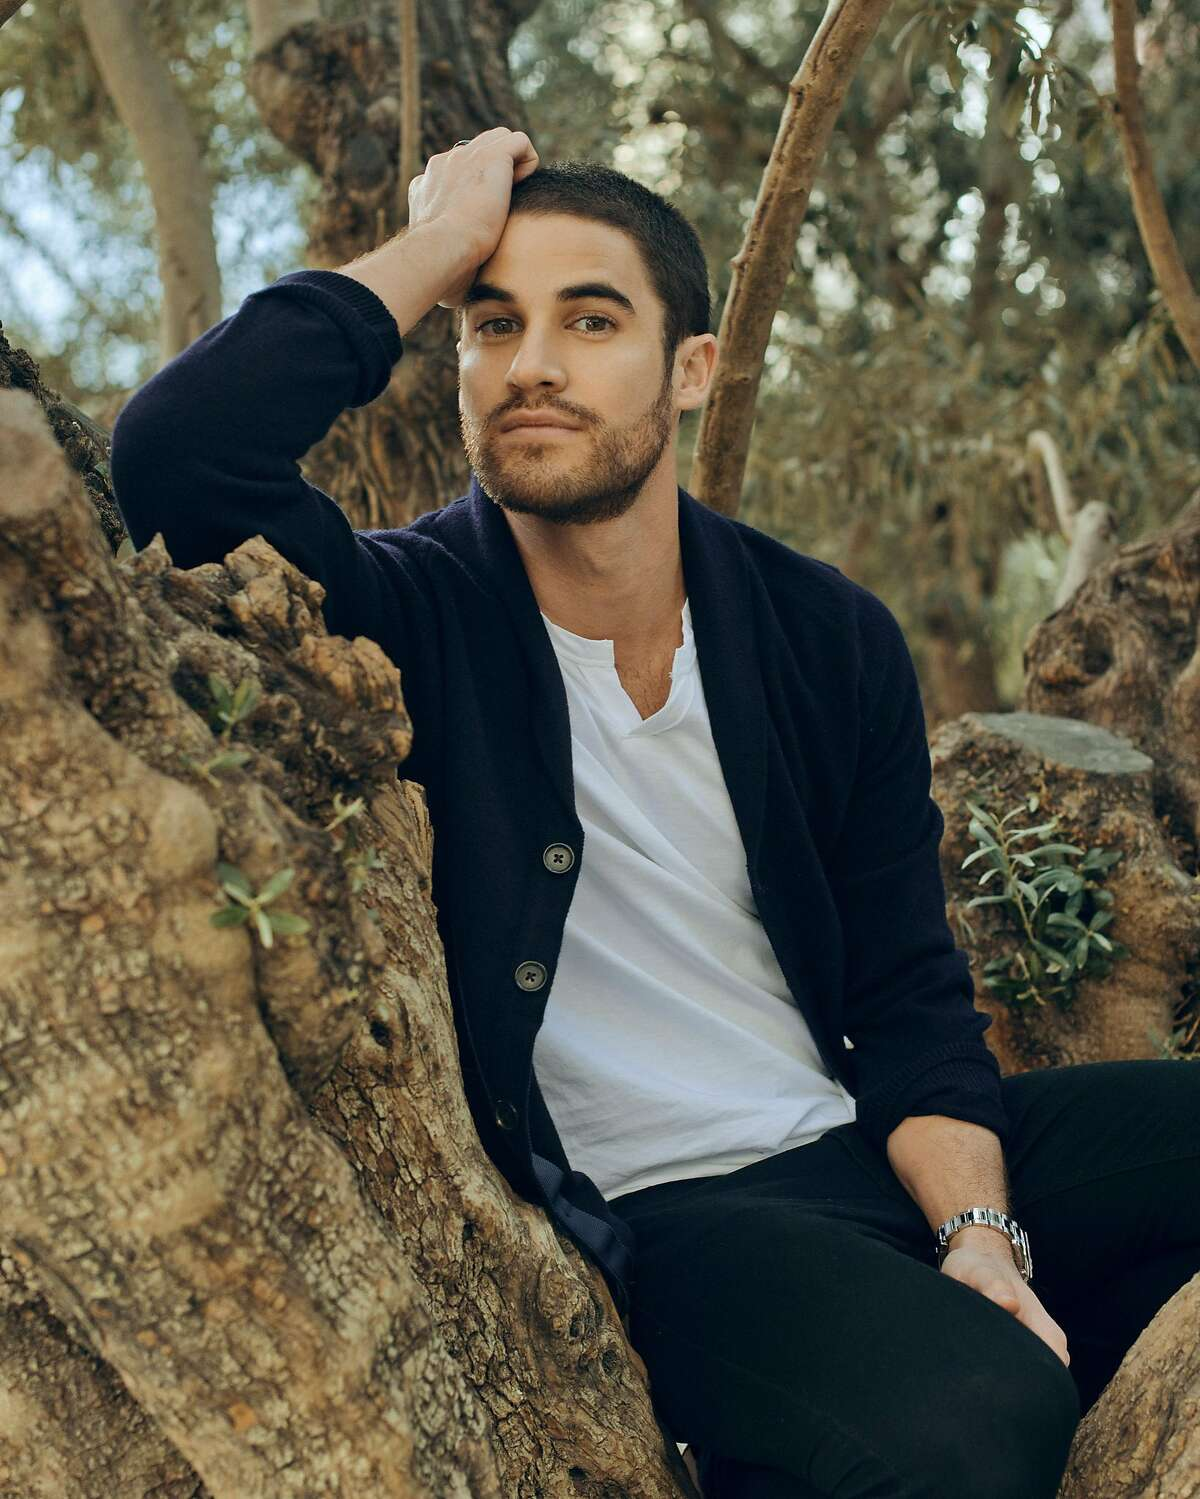 Darren Criss, star of the upcoming �The Assassination of Gianni Versace: American Crime Story,� in Los Angeles, Nov. 27, 2017. Playing a gay gigolo turned serial killer was a big change for Criss, who is best known as a preppy love interest on �Glee.� (Ryan Pfluger/The New York Times)